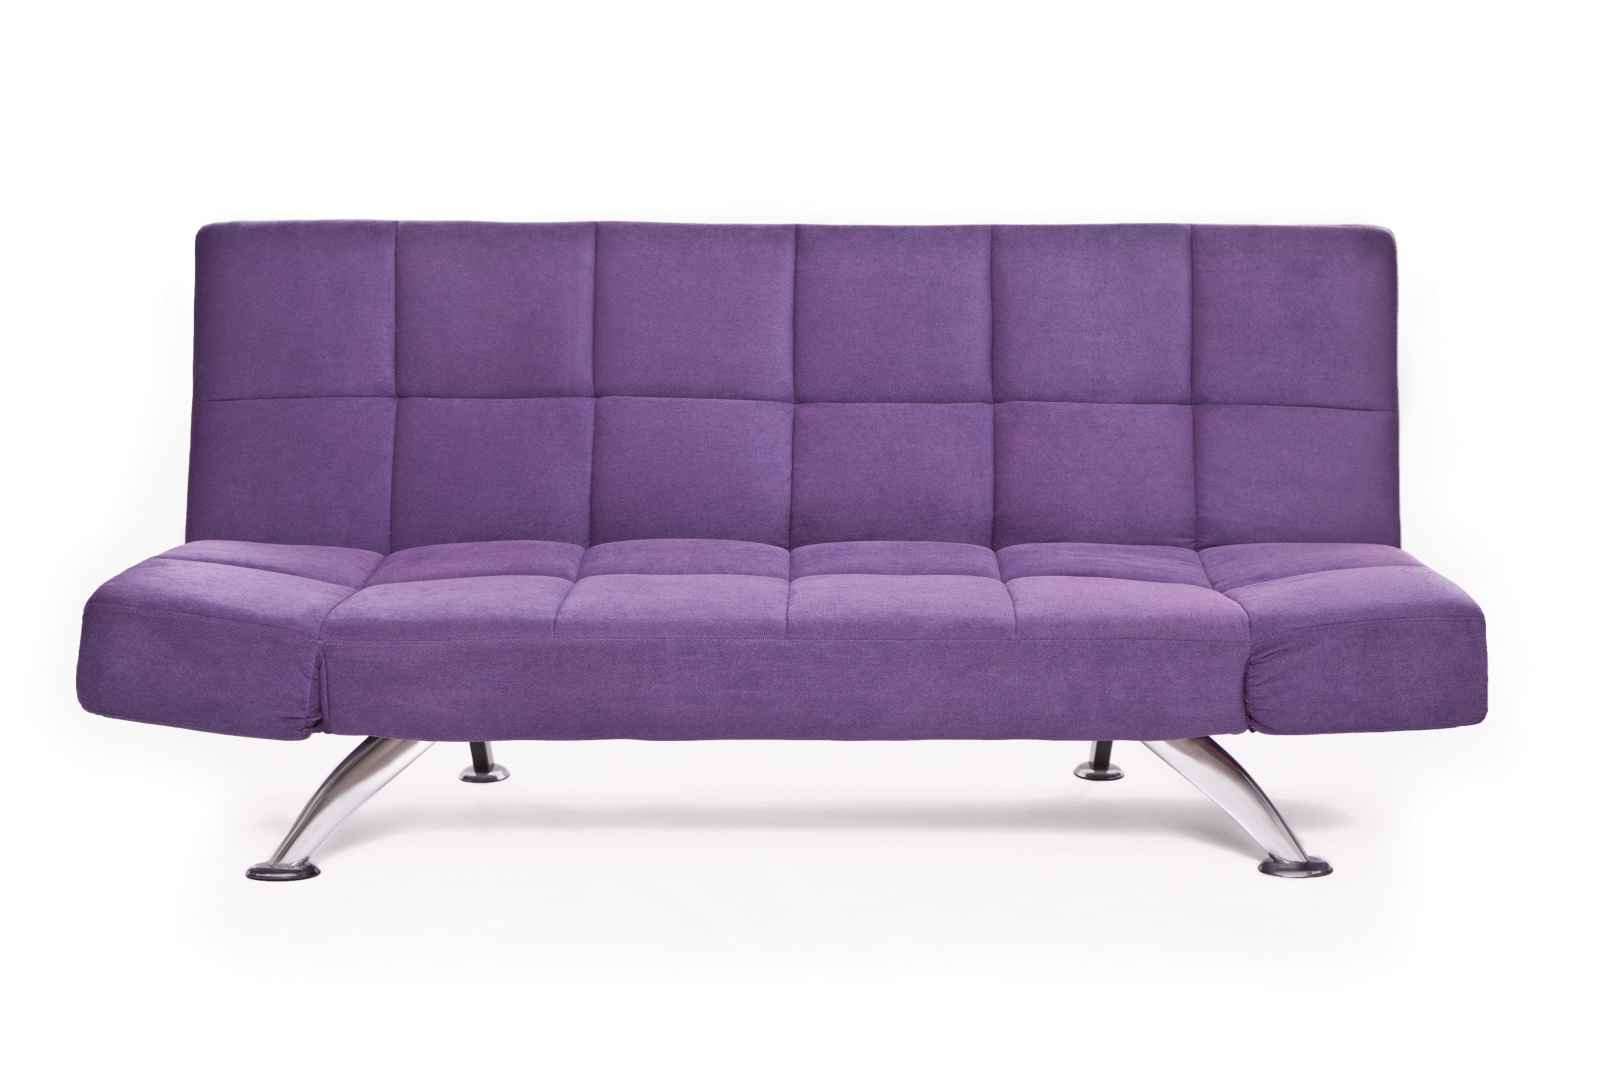 sleeper sofa bed sofa bed couch sofa sofa couch pu leather sofa purple ebay. Black Bedroom Furniture Sets. Home Design Ideas